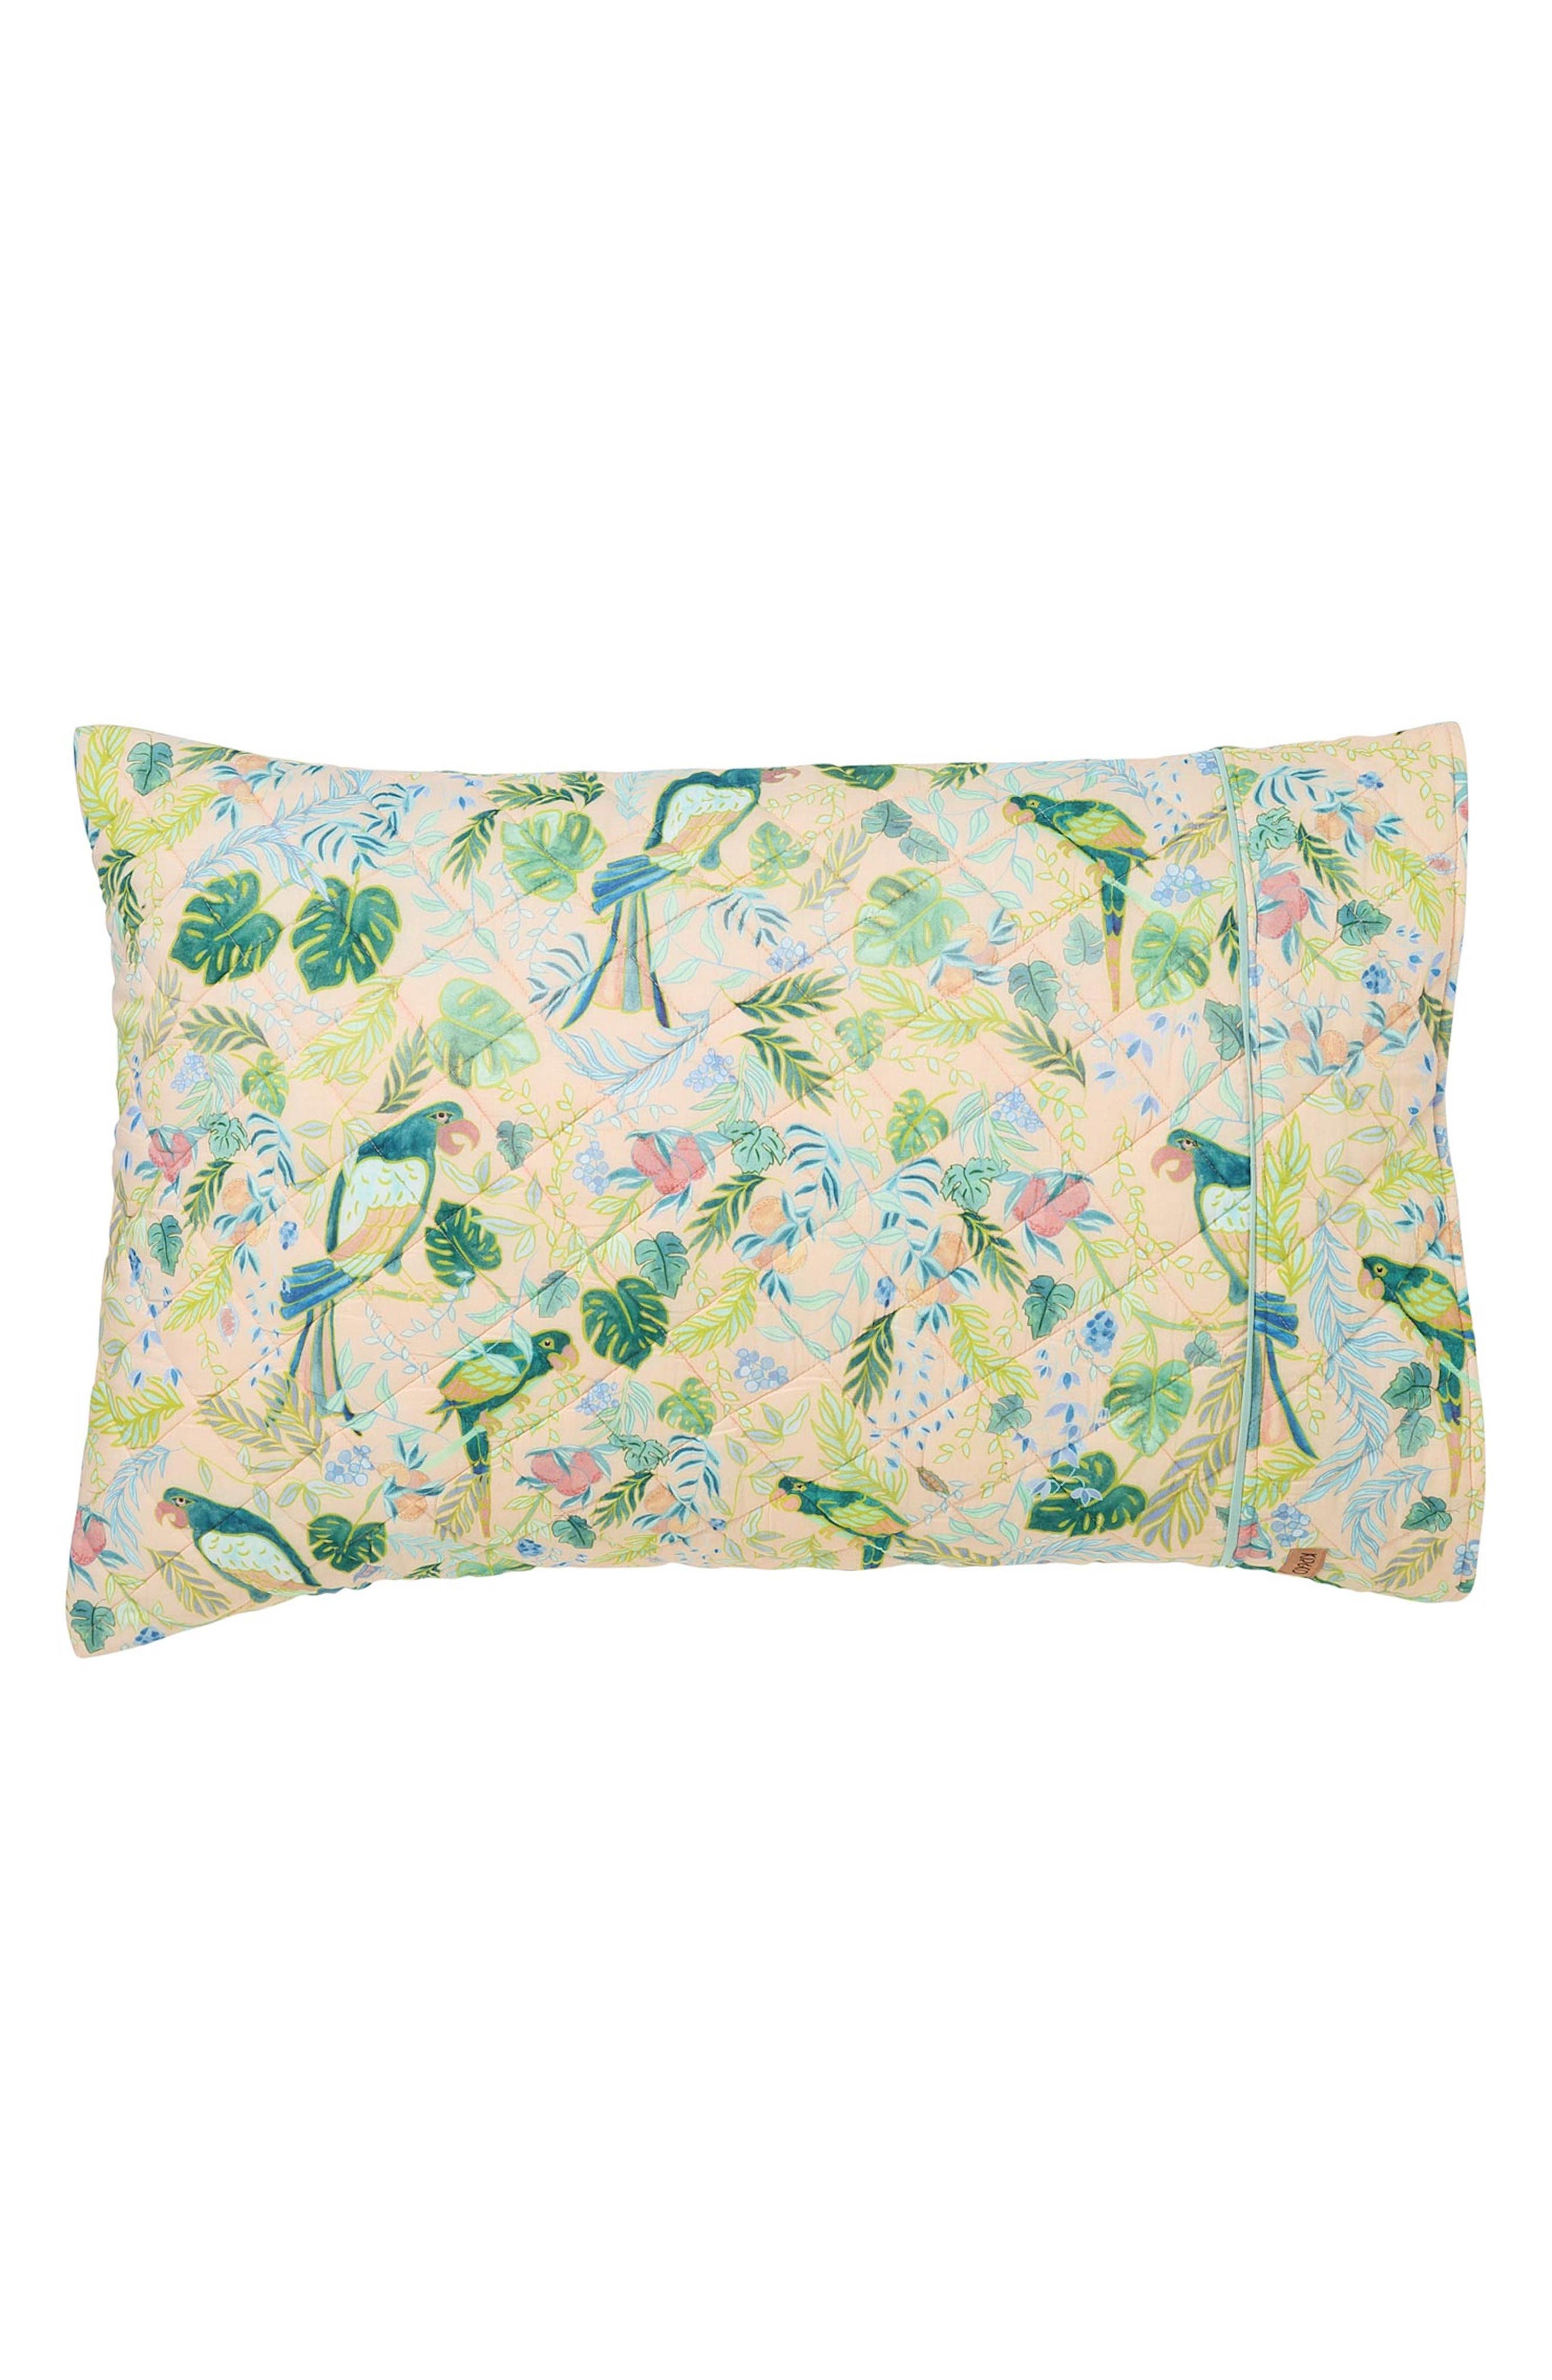 Birds of Paradise Quilted Cotton Pillowcase,                         Main,                         color, Multi